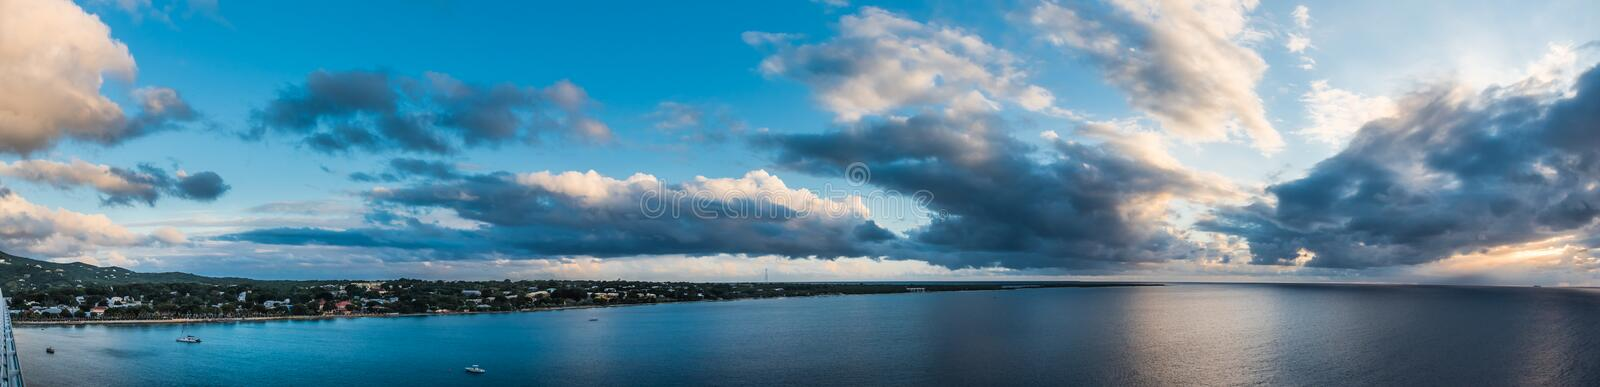 Panoramic view of the harbor and Caribbean departing St. Croix a stock photos